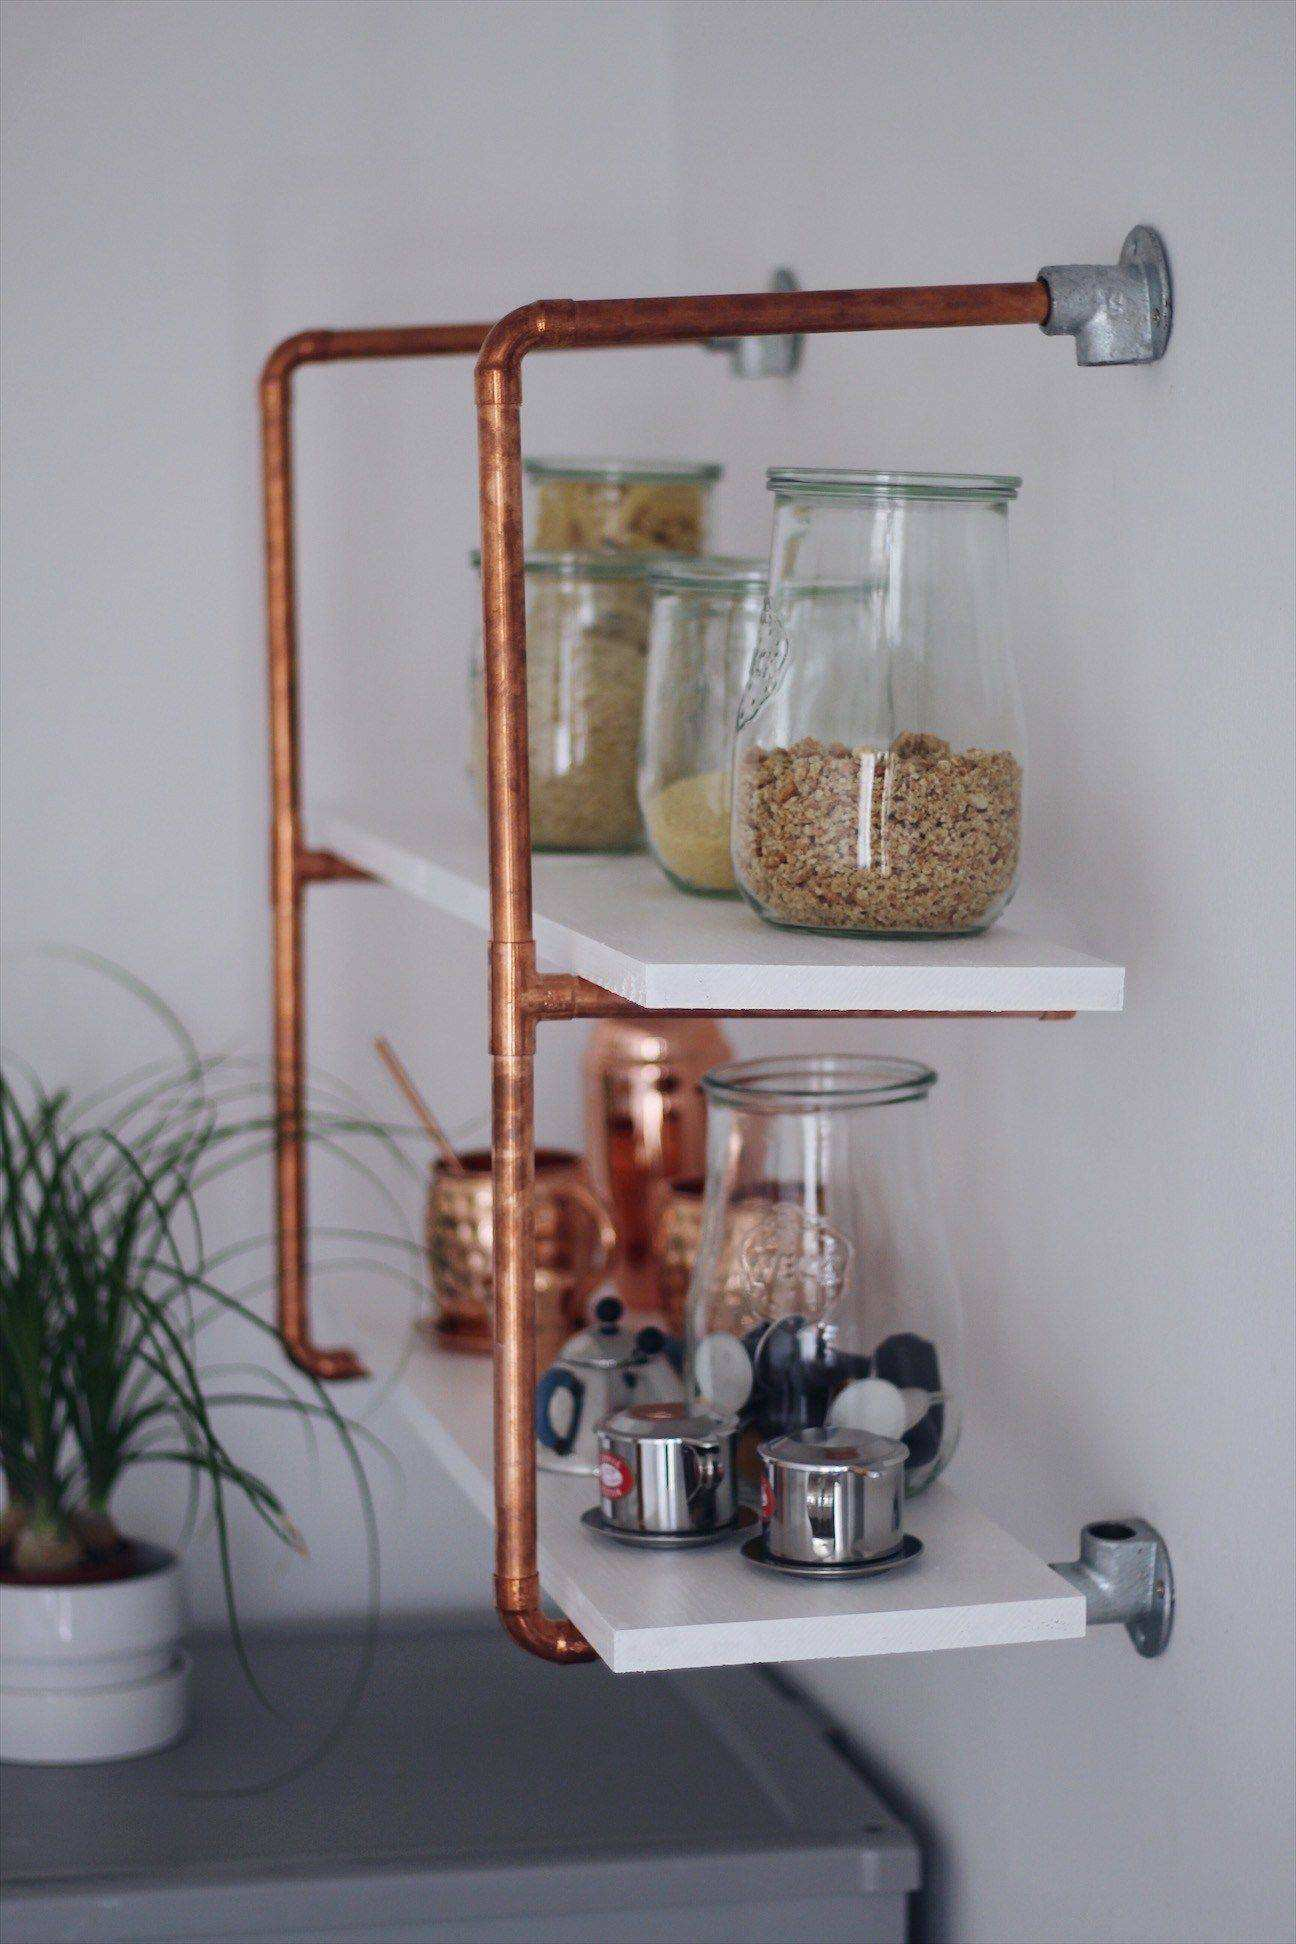 Selfmade Wohnideen Diy for Your Selfmade Copper Shelf